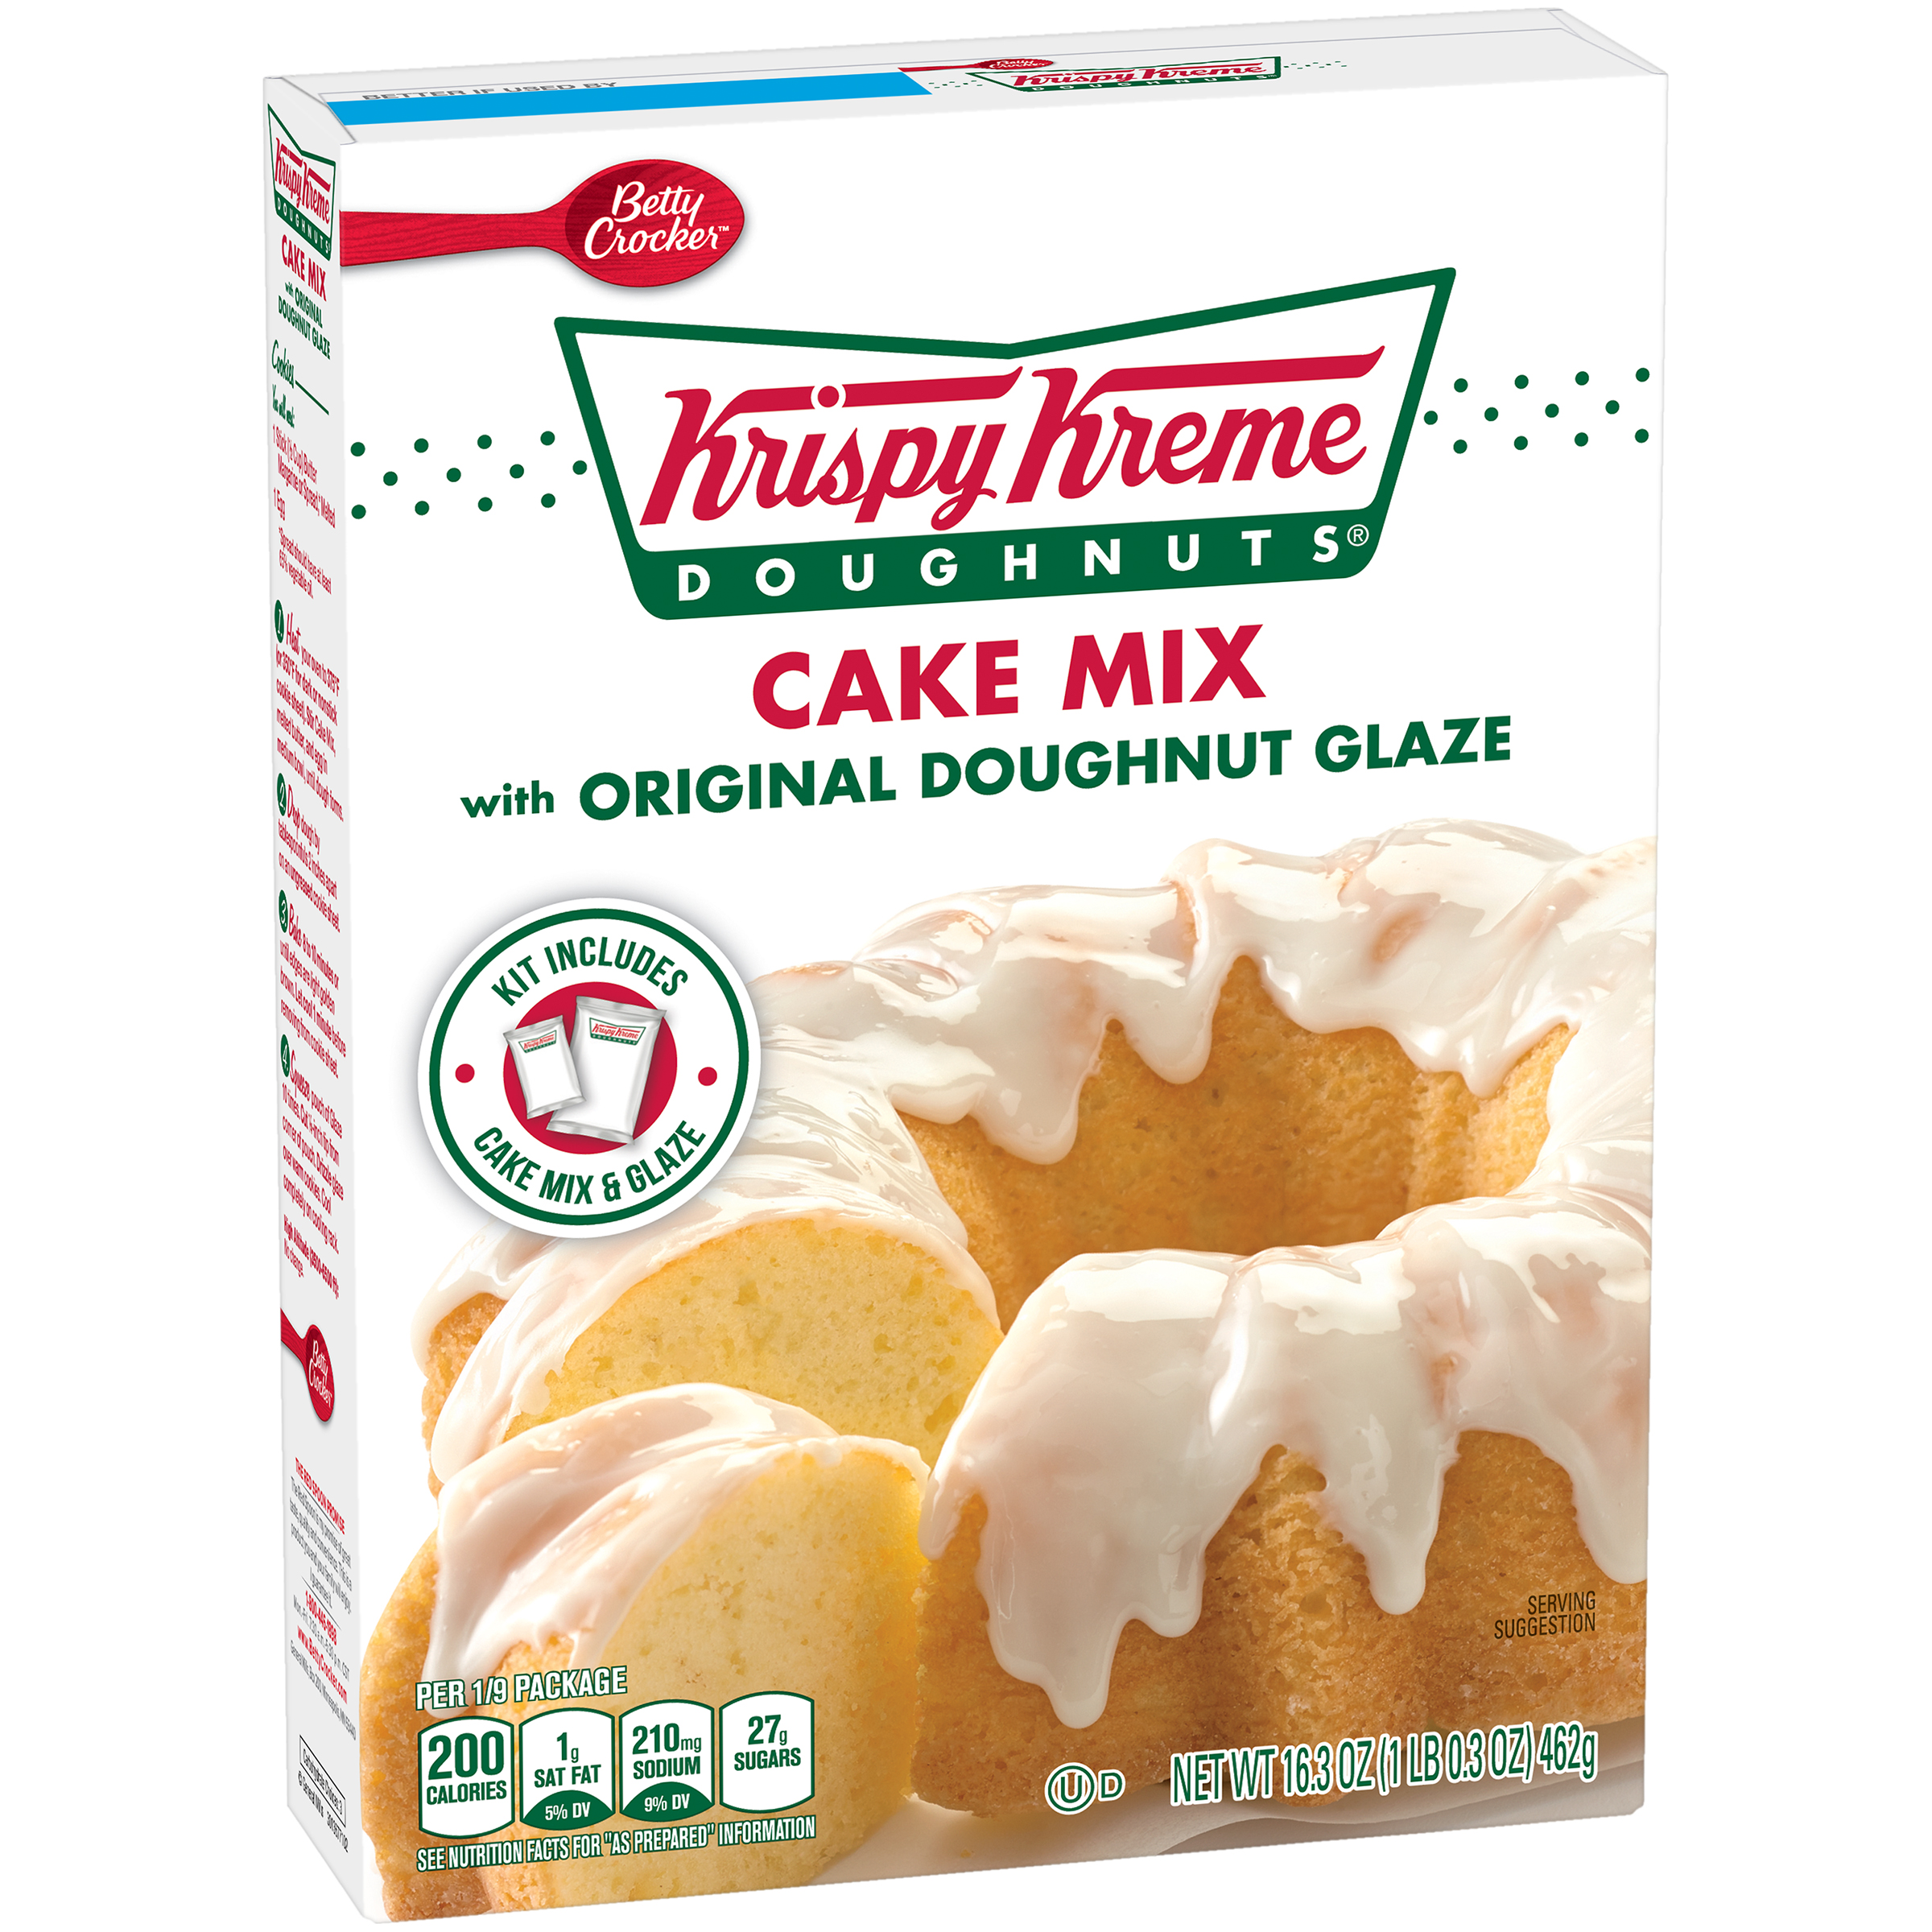 Betty Crocker�� Krispy Kreme Doughnuts�� Cake Mix with Original Doughnut Glaze 16.3 oz. Box